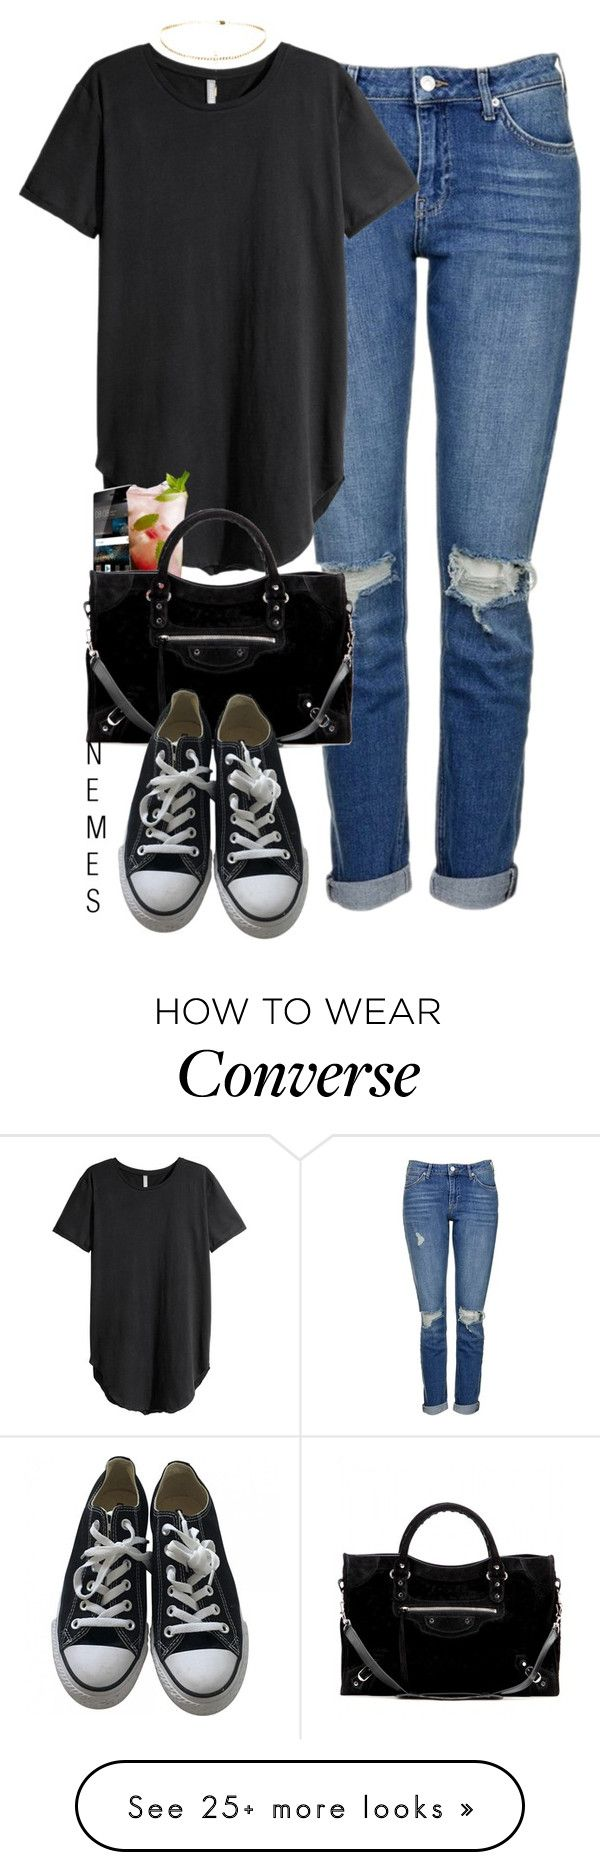 """LOOK AT YOU"" by nemes-margareta-anna on Polyvore featuring Topshop, H&M, Huawei, Disney, Balenciaga and Converse"